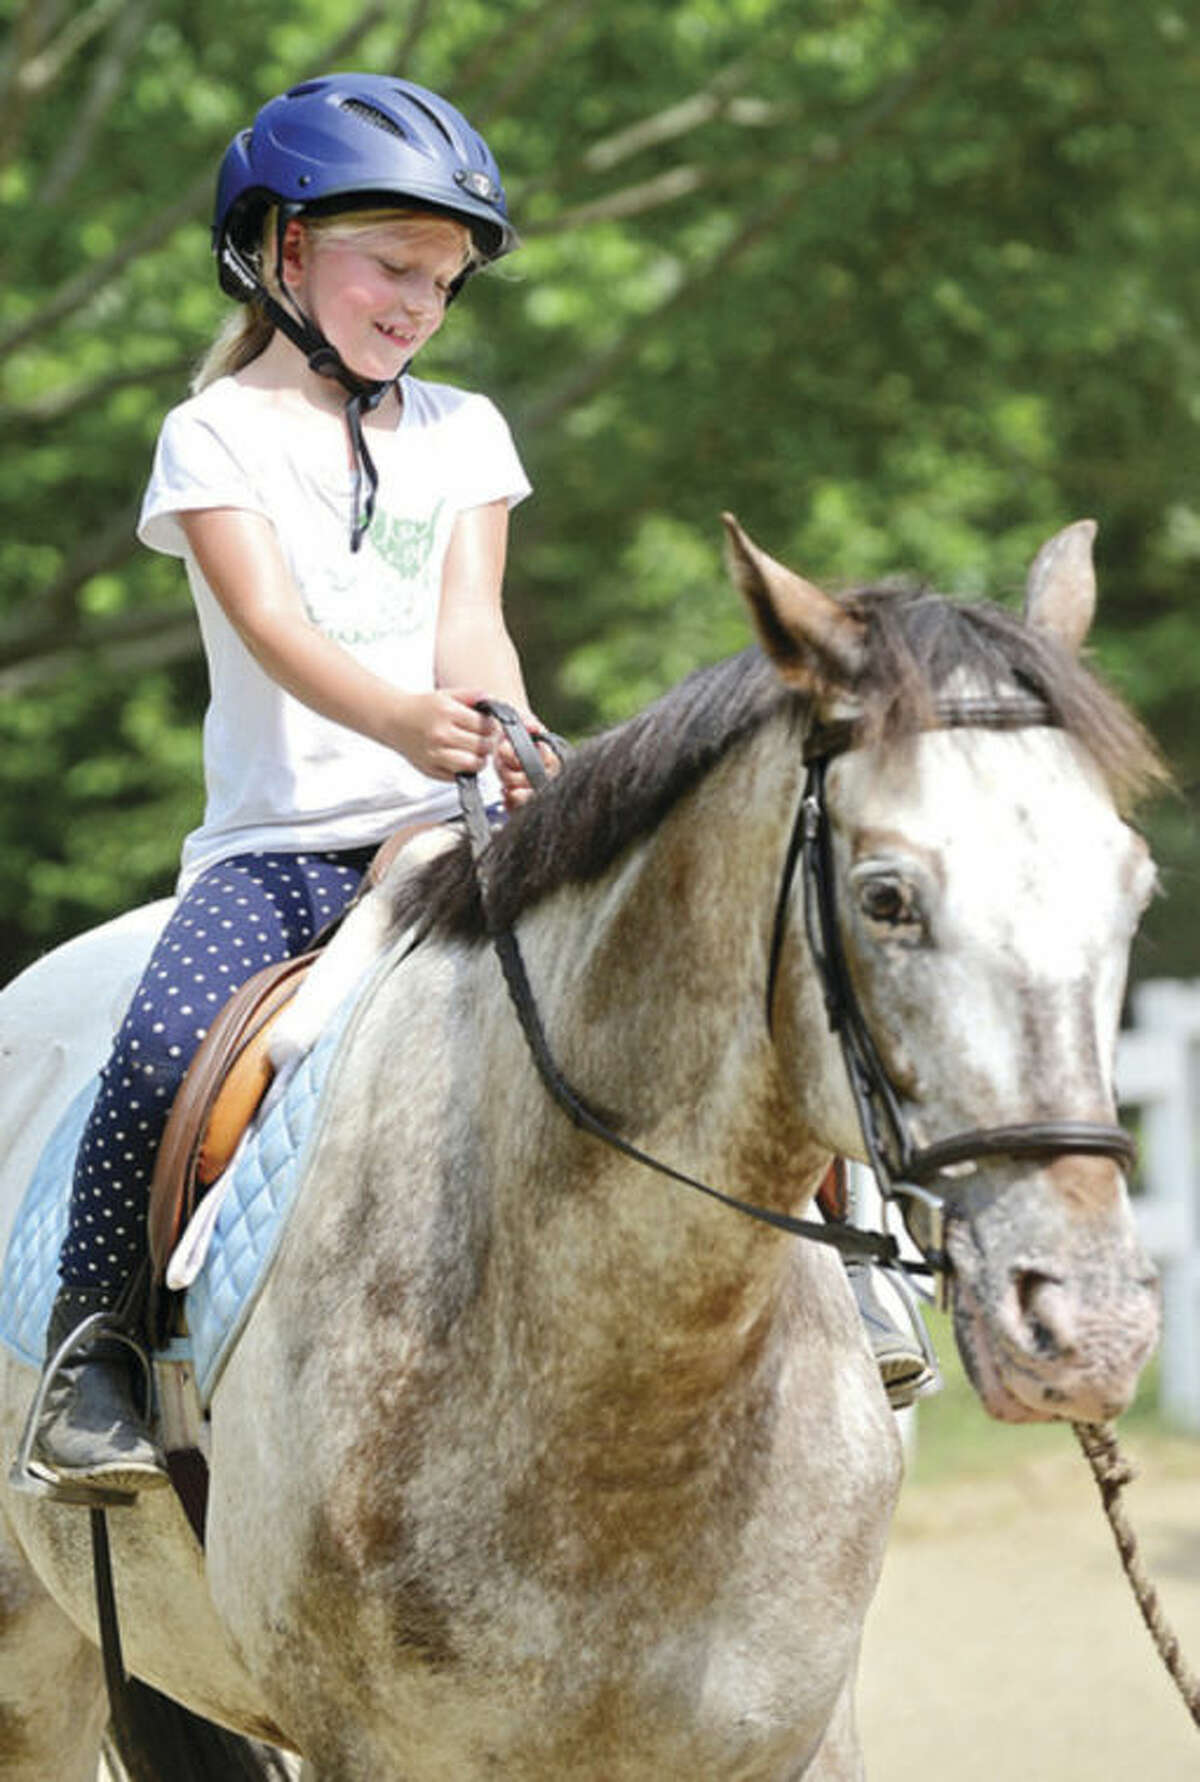 Hour photo / Erik Trautmann Hannah Schonberg gets to ride Quebec during the Wishes for Horses summer camp Wednesday. Wishes for Horses is a non-profit 501 (3) c summer camp set up to help children have a horseback riding experience who might not otherwise have the chance to do so.